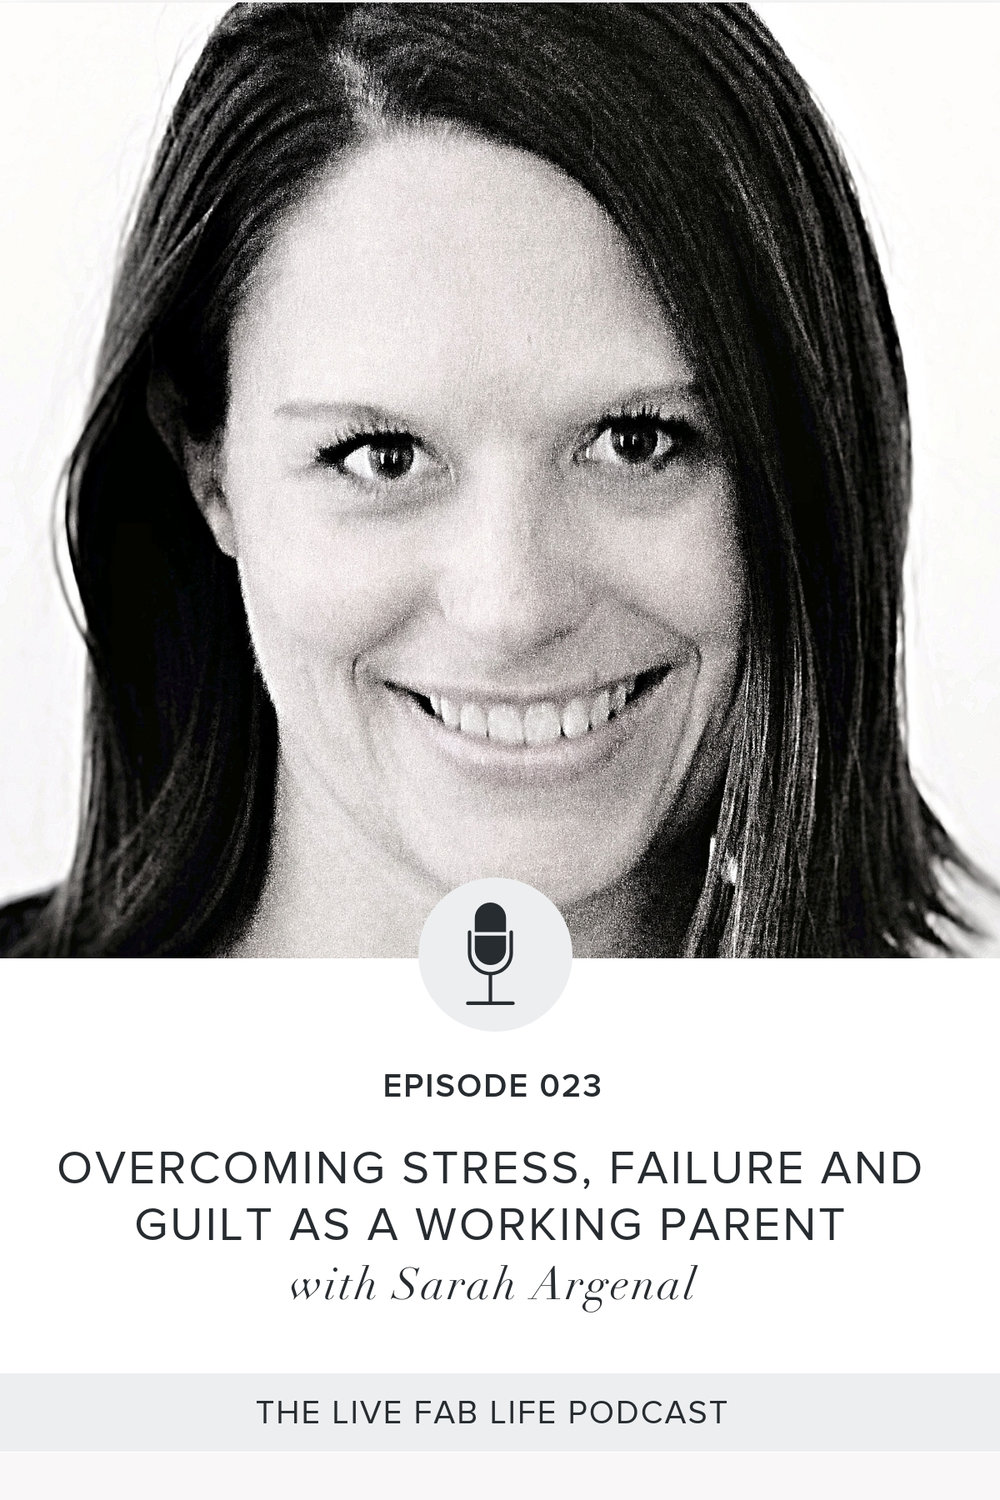 Episode 023: Overcoming Stress, Failure and Guilt As A Working Parent with Sarah Argenal